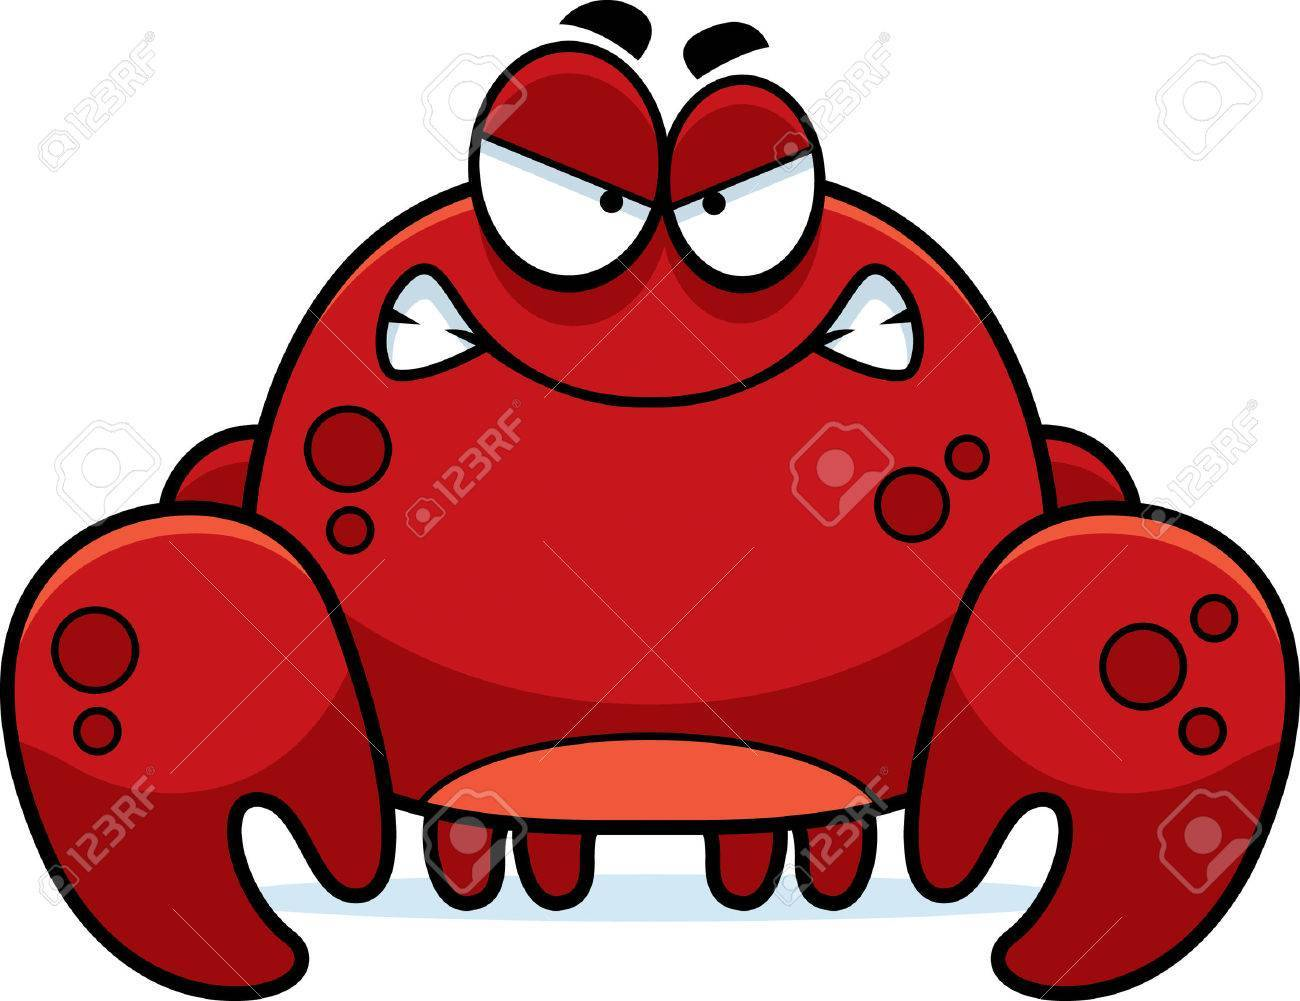 Angry crab clipart 1 » Clipart Portal.